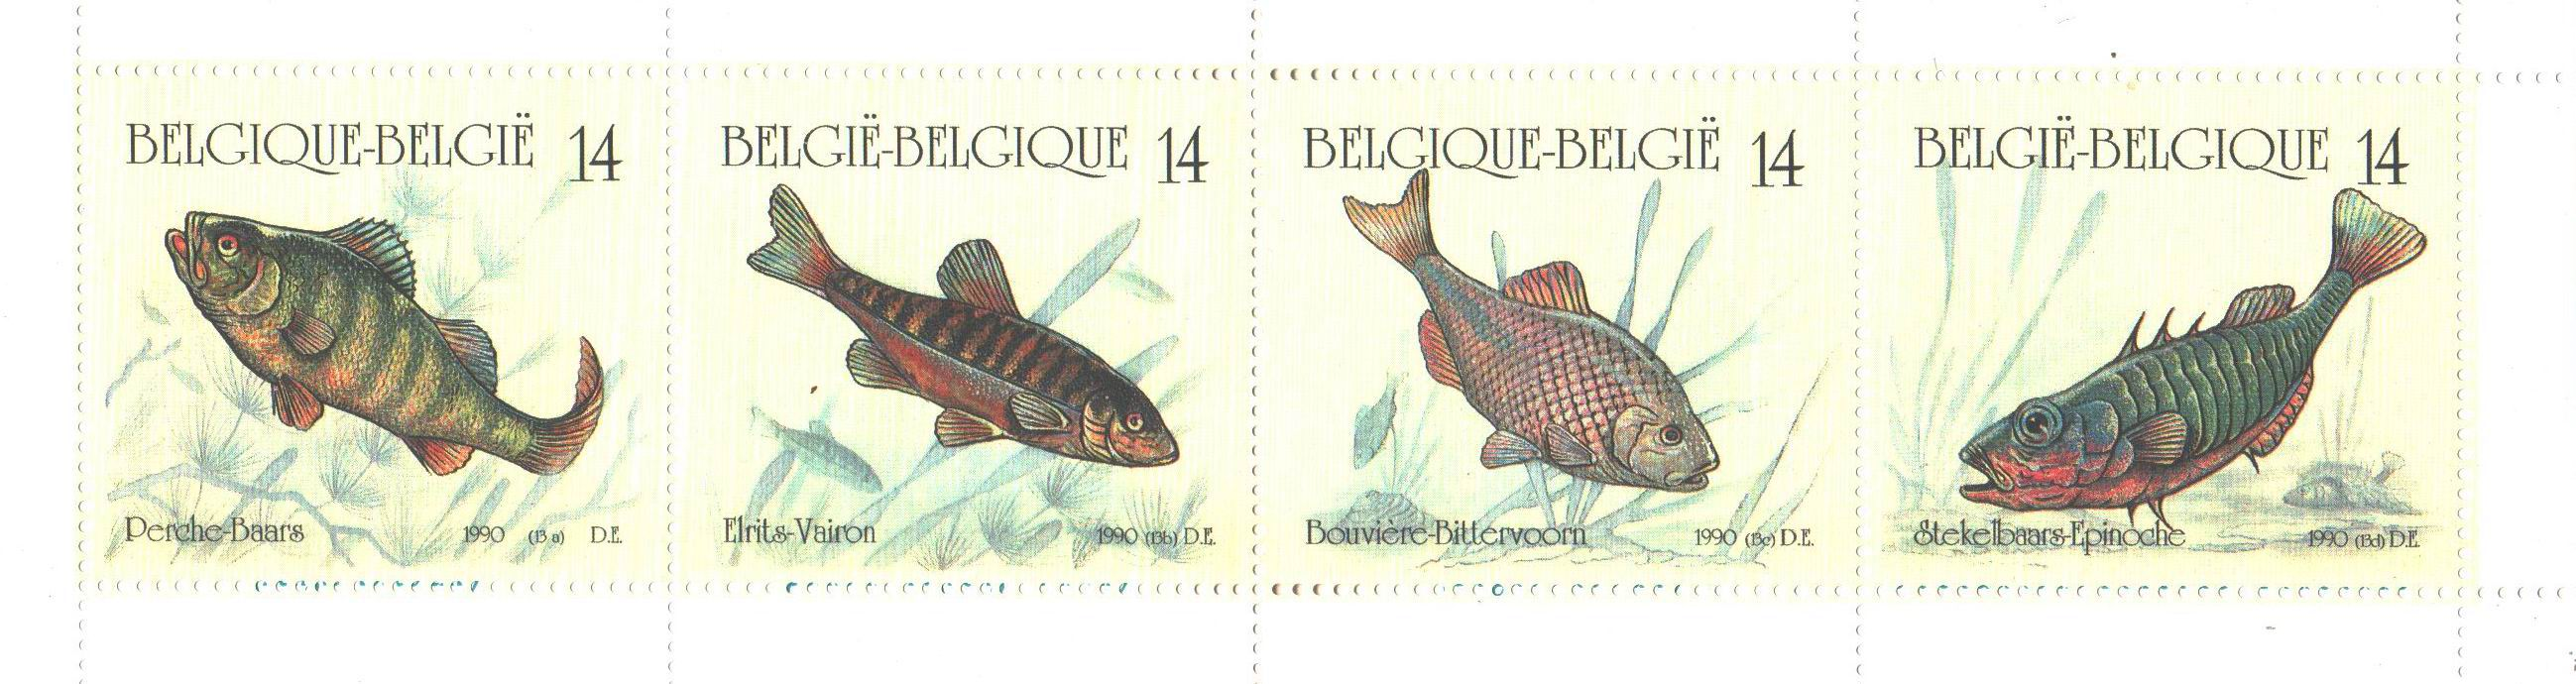 Belgium 1990 Stamps Booklet With 4 Fishes Stamps MNH